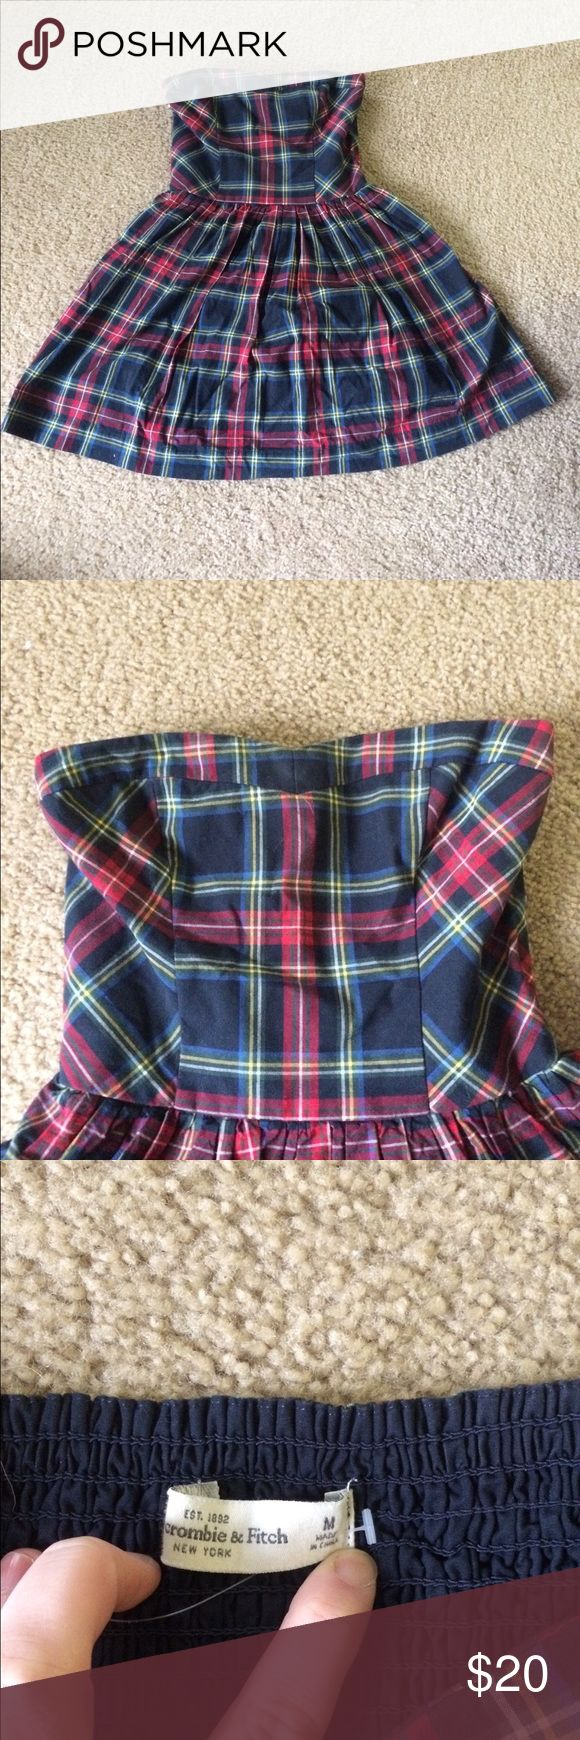 Plaid Abercrombie and Fitch dress Plaid strapless Abercrombie and Fitch dress with removable ribbon around waist. Ruched on back to allow for a right yet comfortable fit and flared at bottom Abercrombie & Fitch Dresses Mini